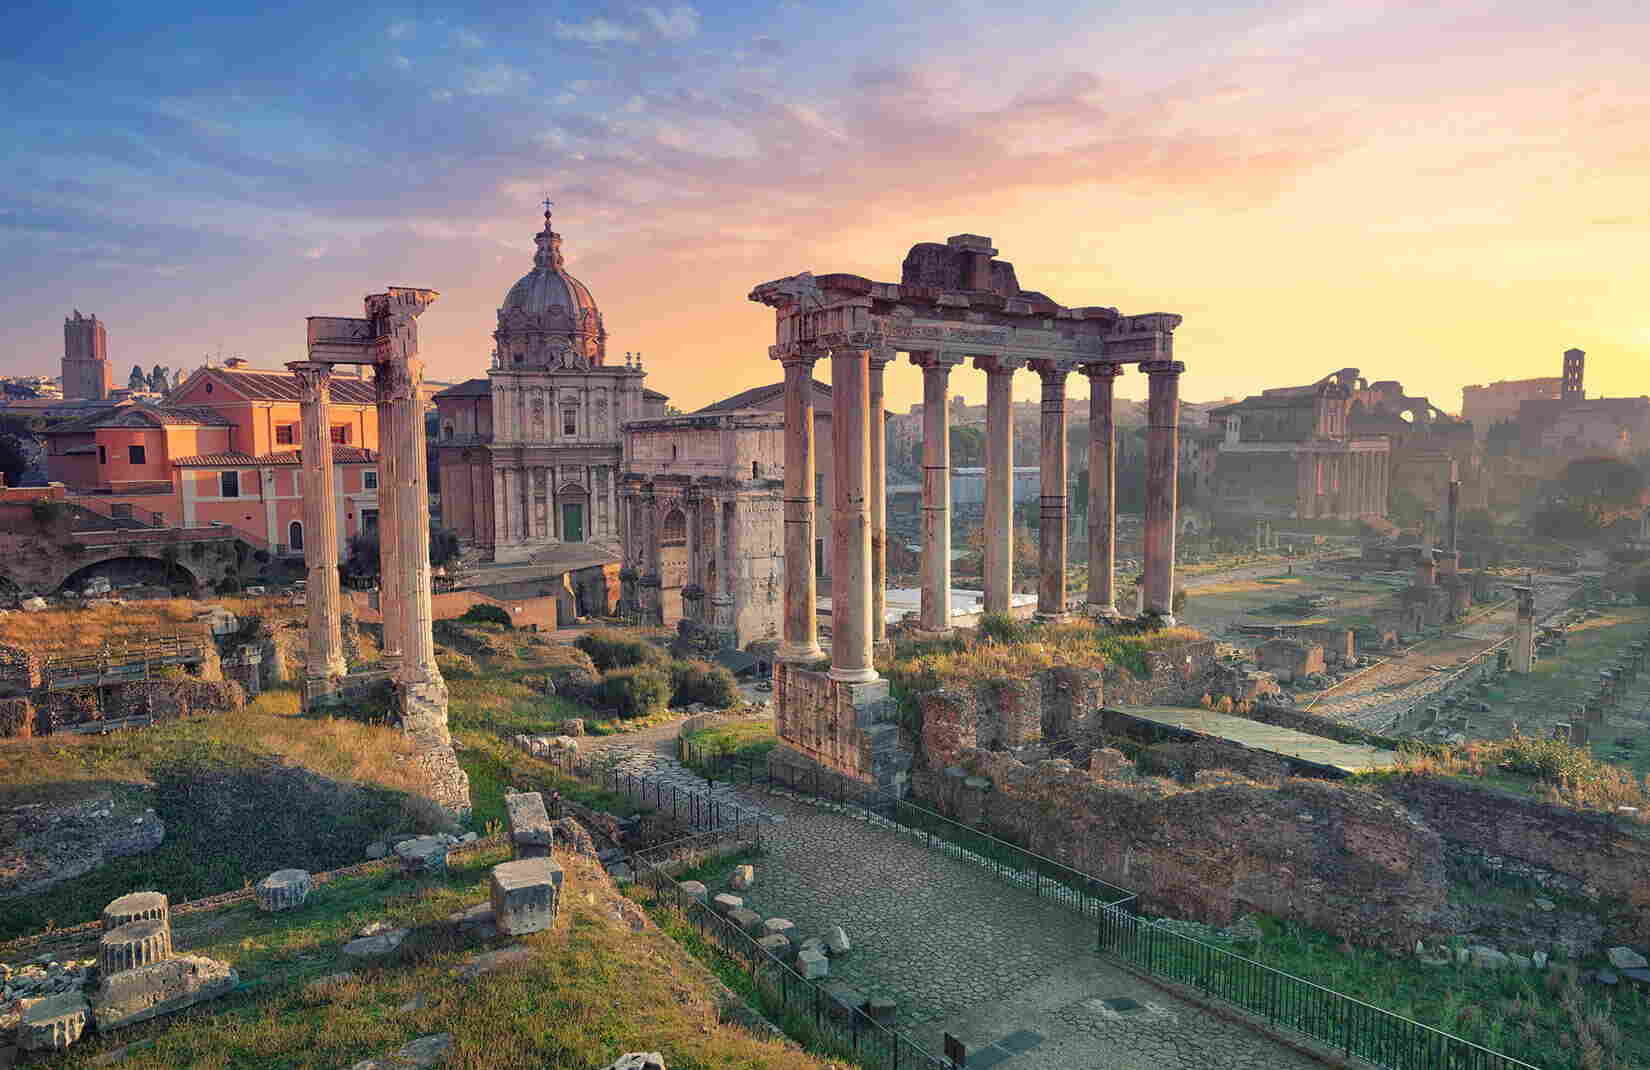 What happened at the Forum in Rome?